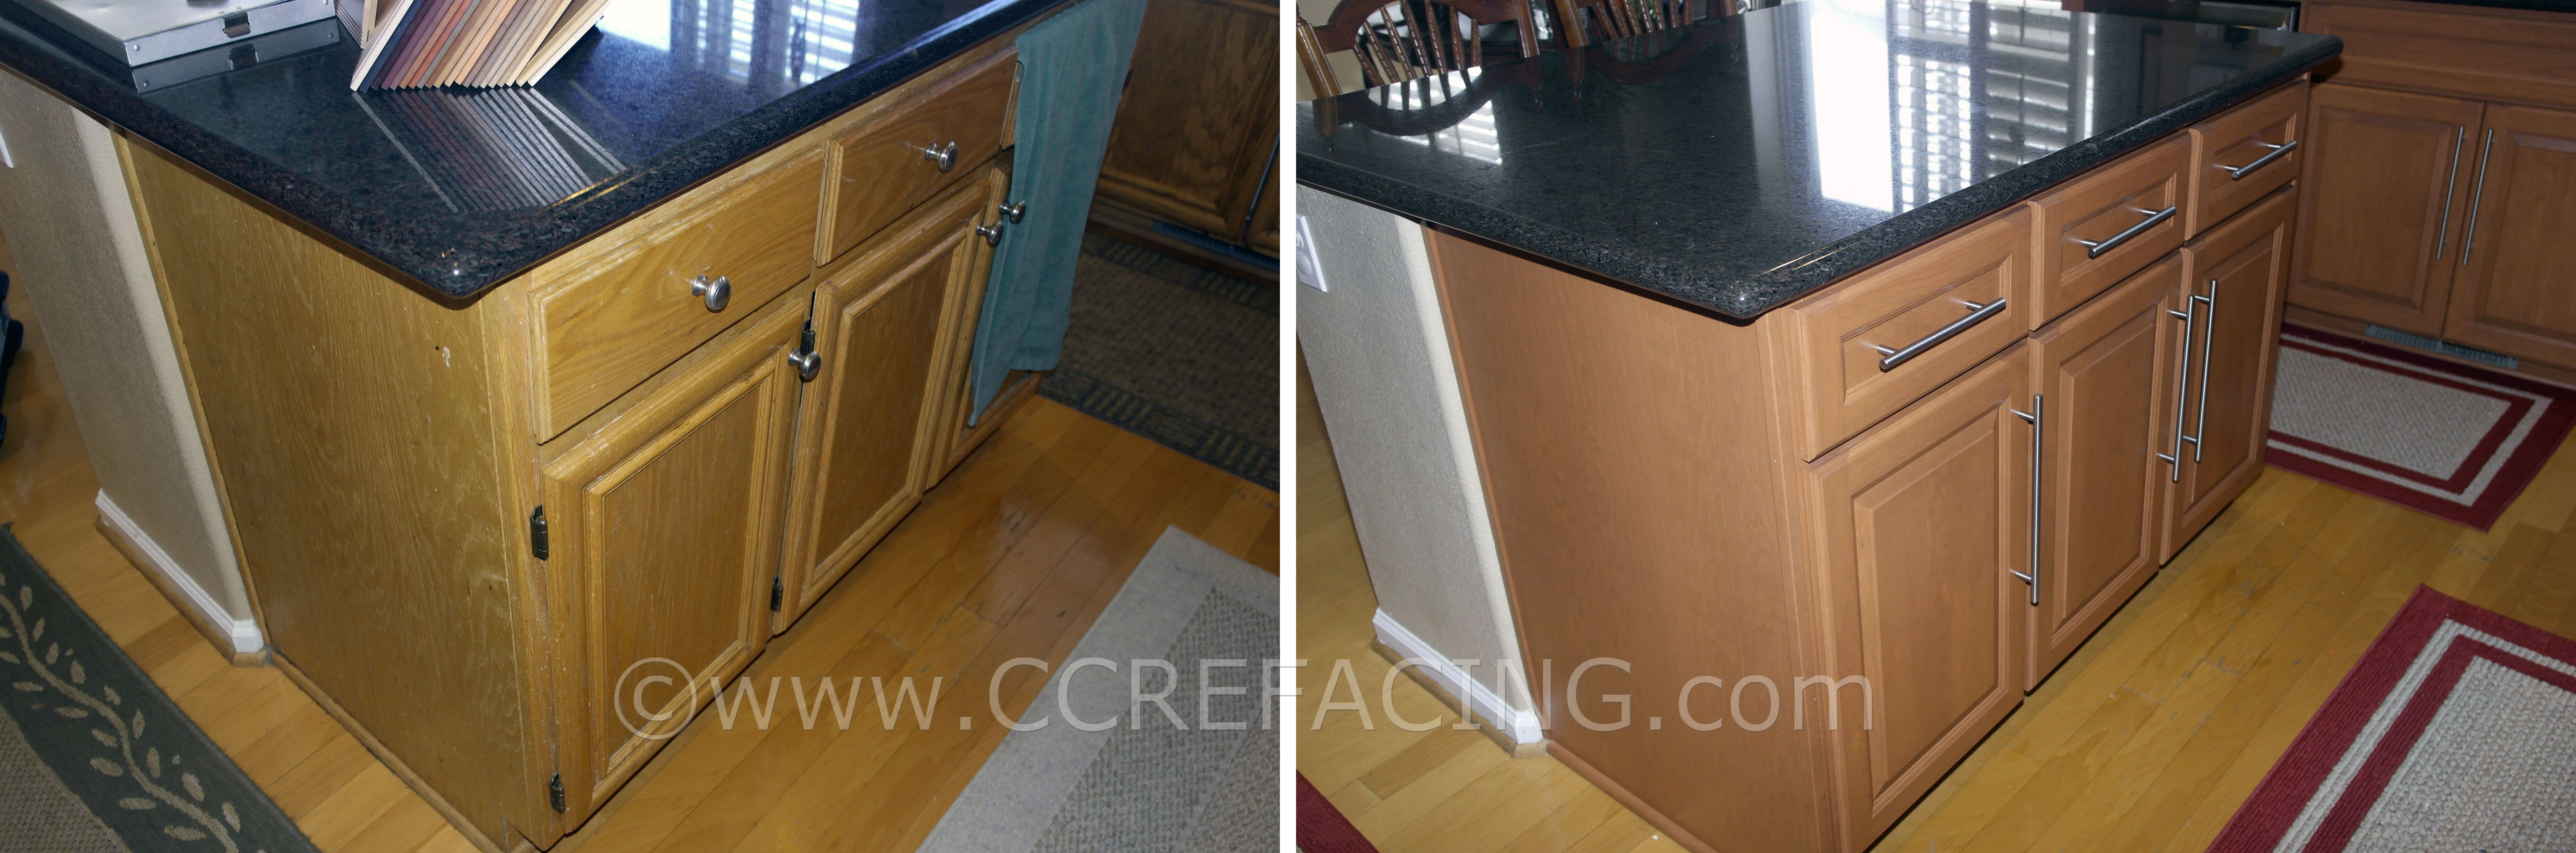 San Carlos Cabinet Reface Refacing With Cherry Raised Panel Doors Cabinet Refacing Custom Cabinets Cabinet